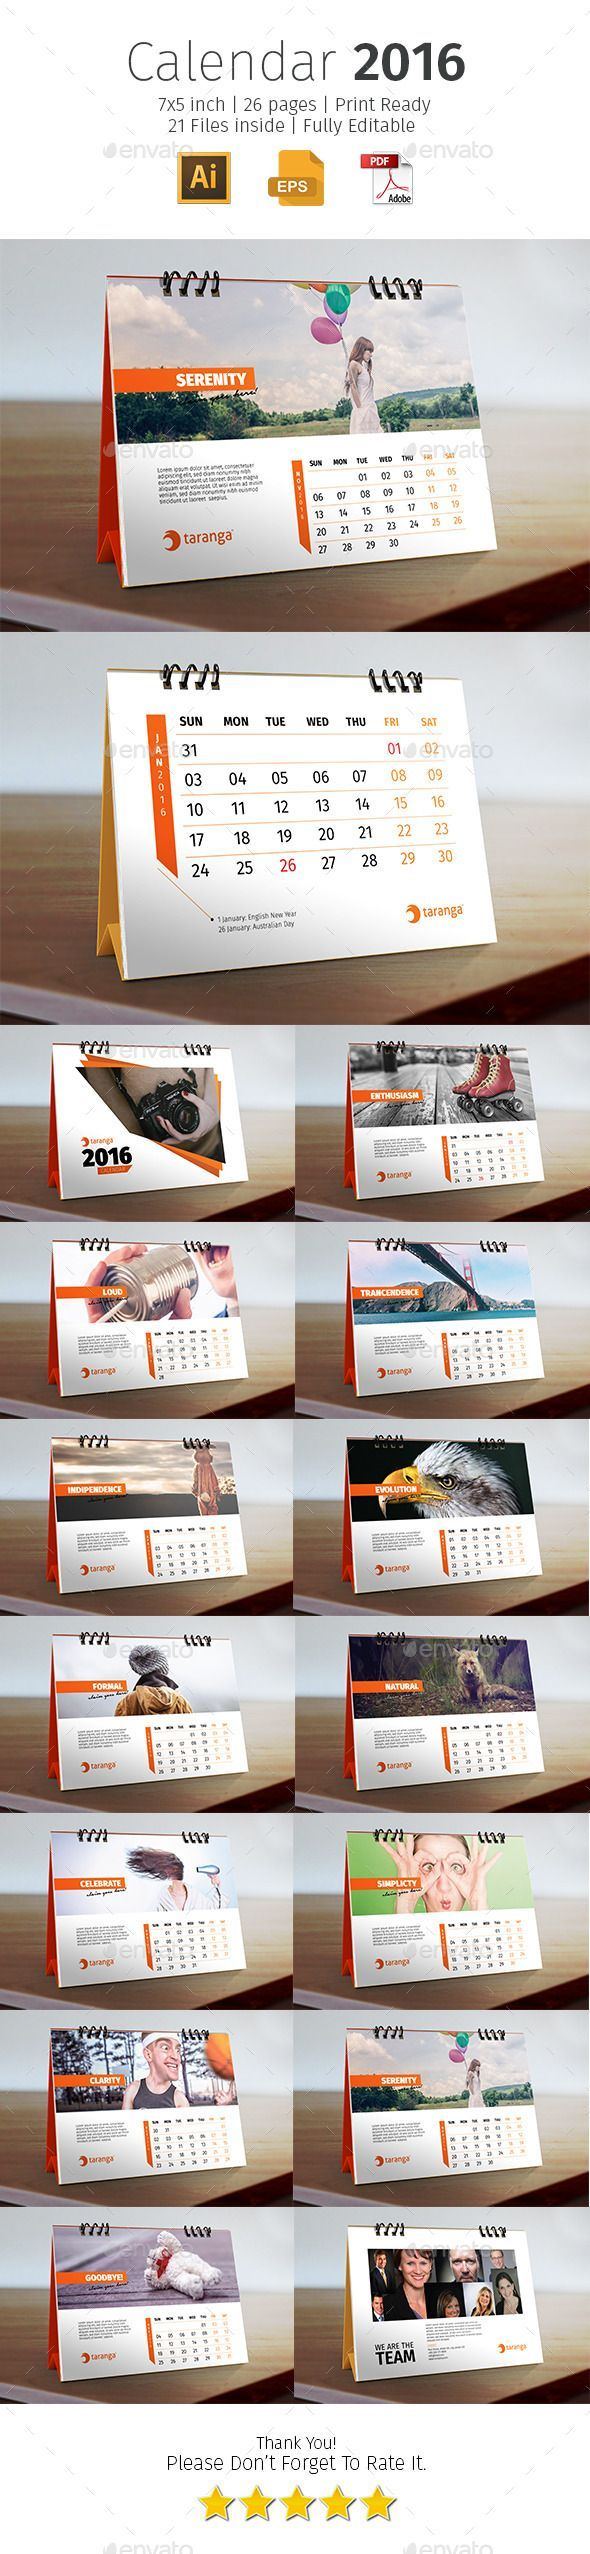 Corporate Calendar Theme Ideas : Ideas about desk calendars on pinterest calendar